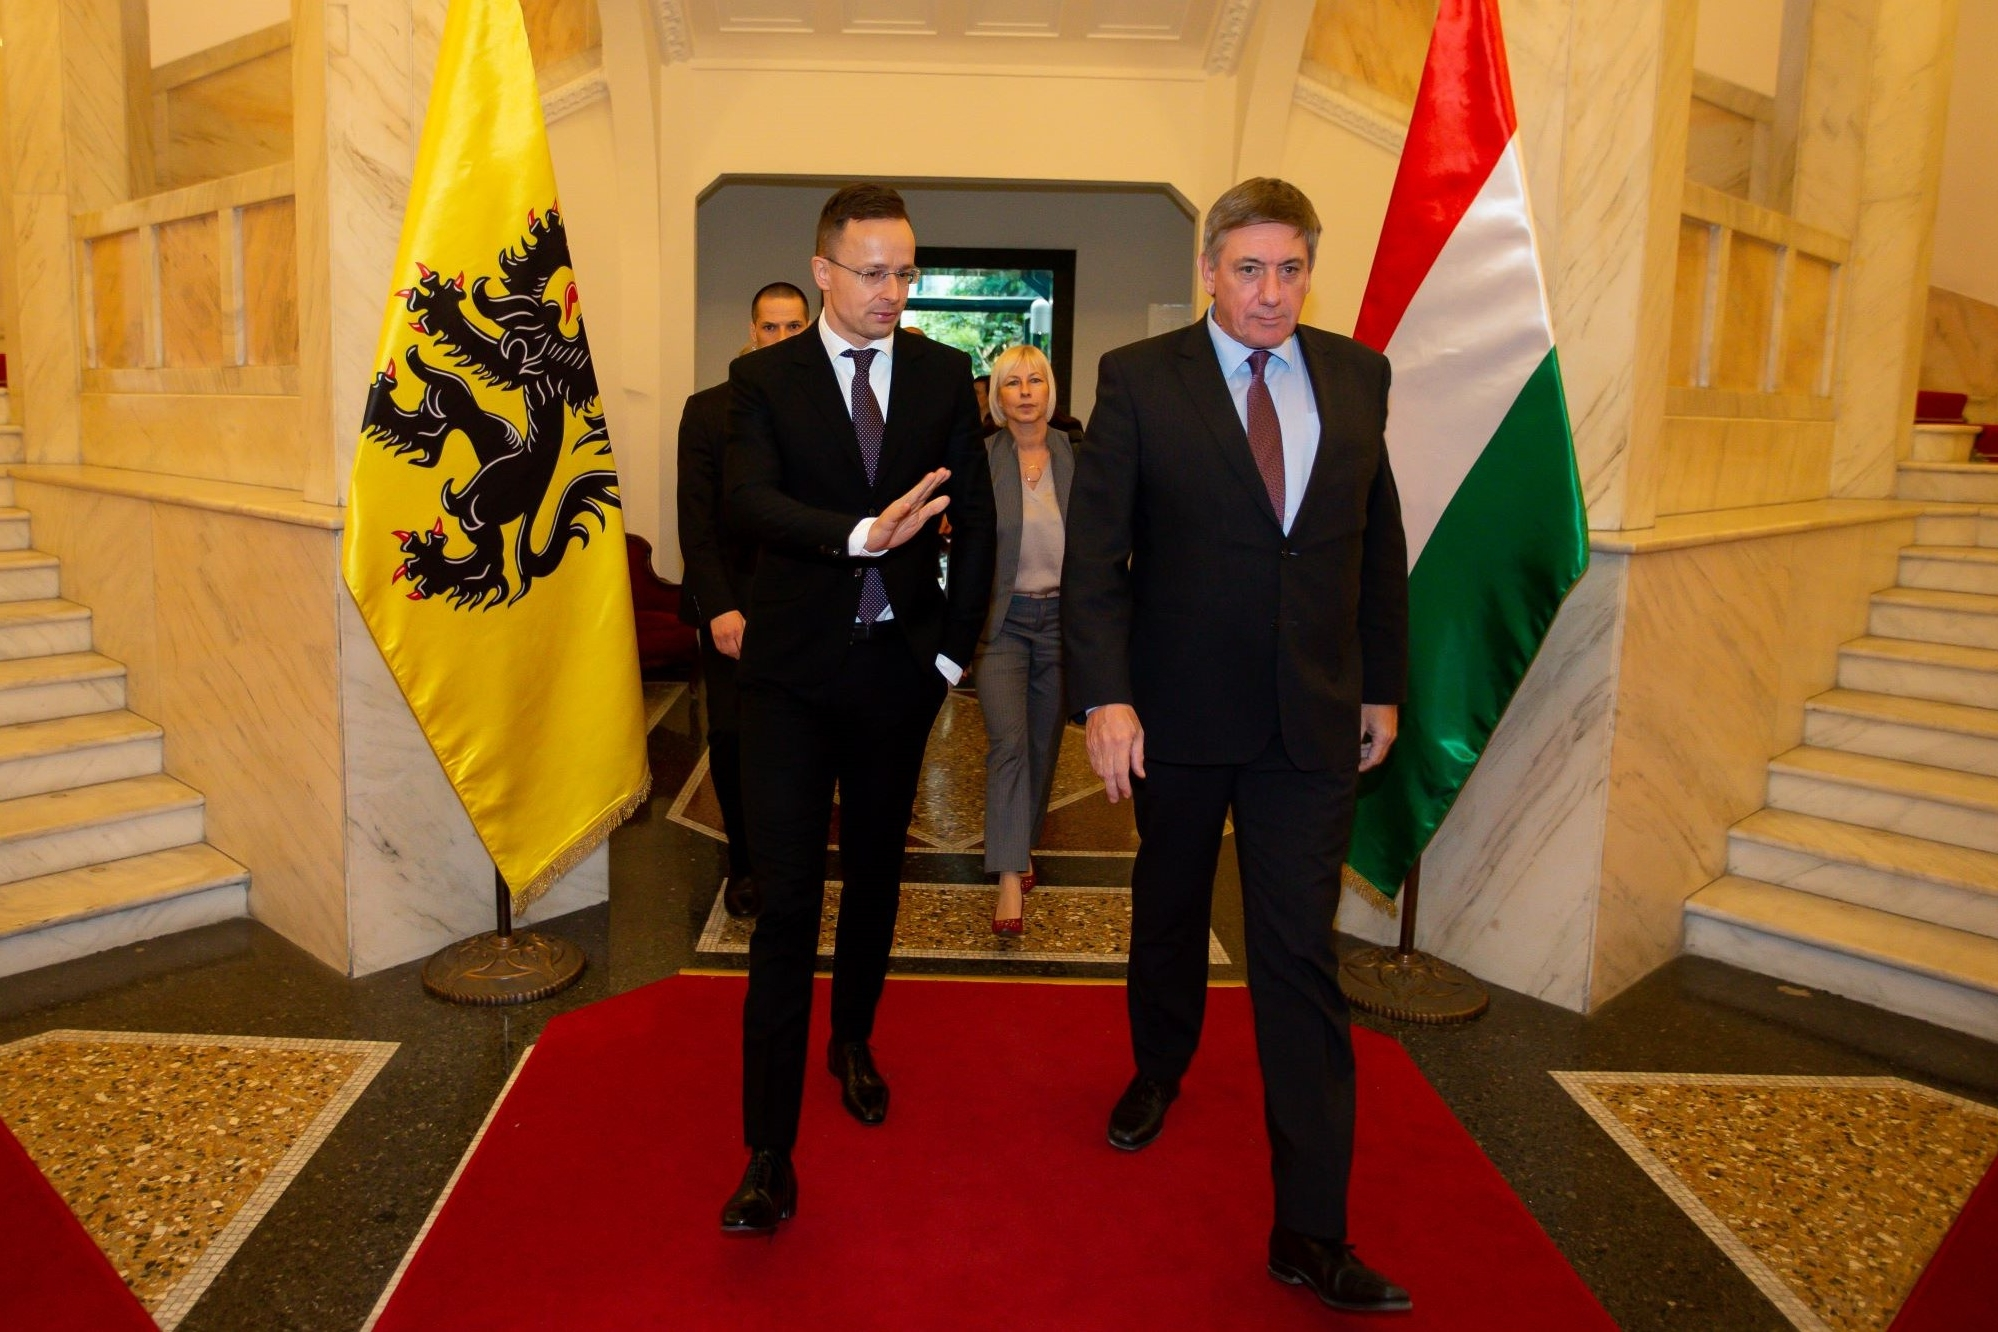 Hungarian minister of foreign affairs Peter Szijjarto and minister-president Jambon in Boedapest